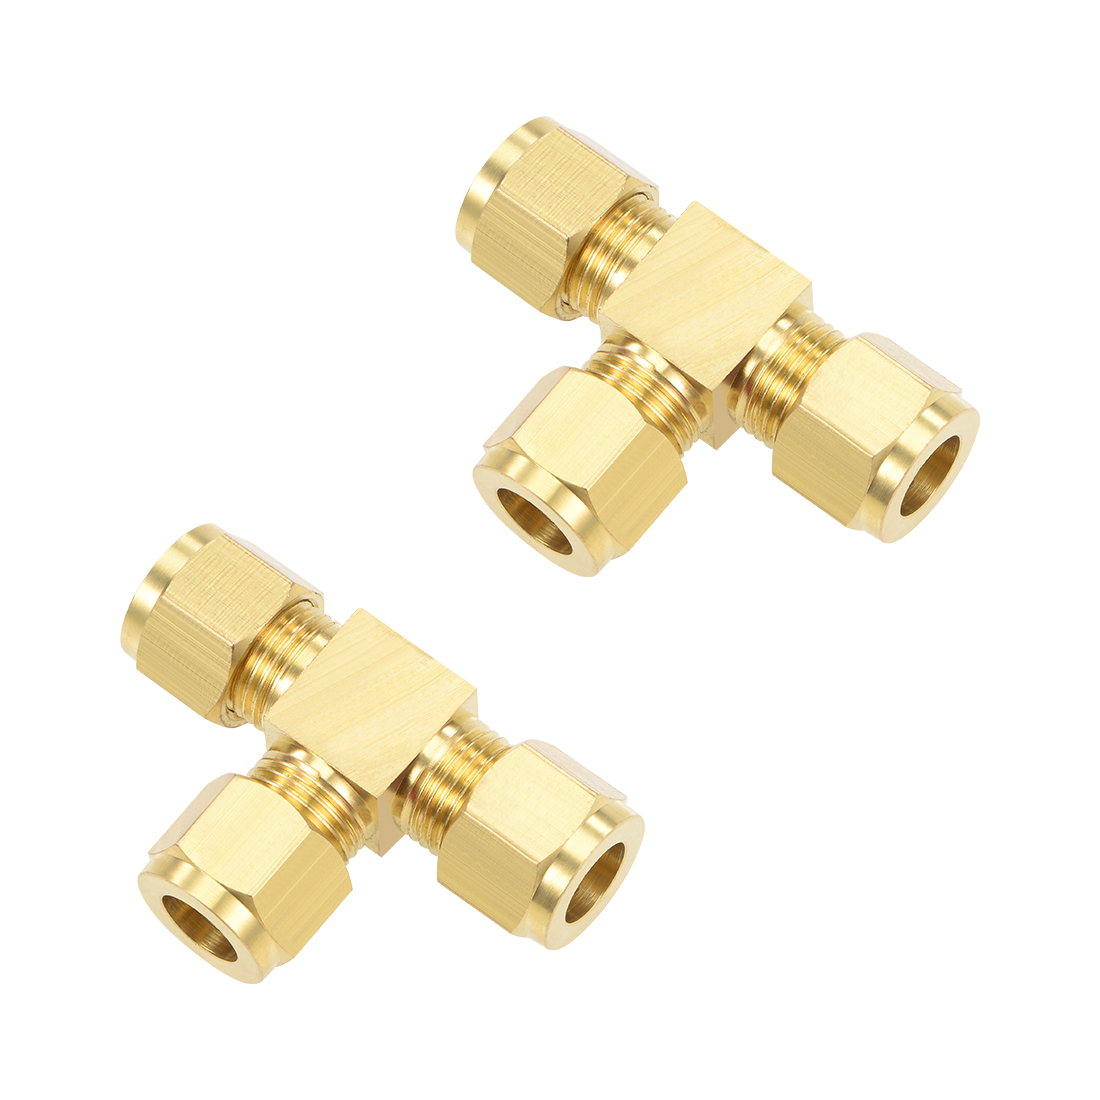 Brass Compression Tube Fitting 9.8mm OD Tee Pipe Adapter Water Irrigation 2pcs